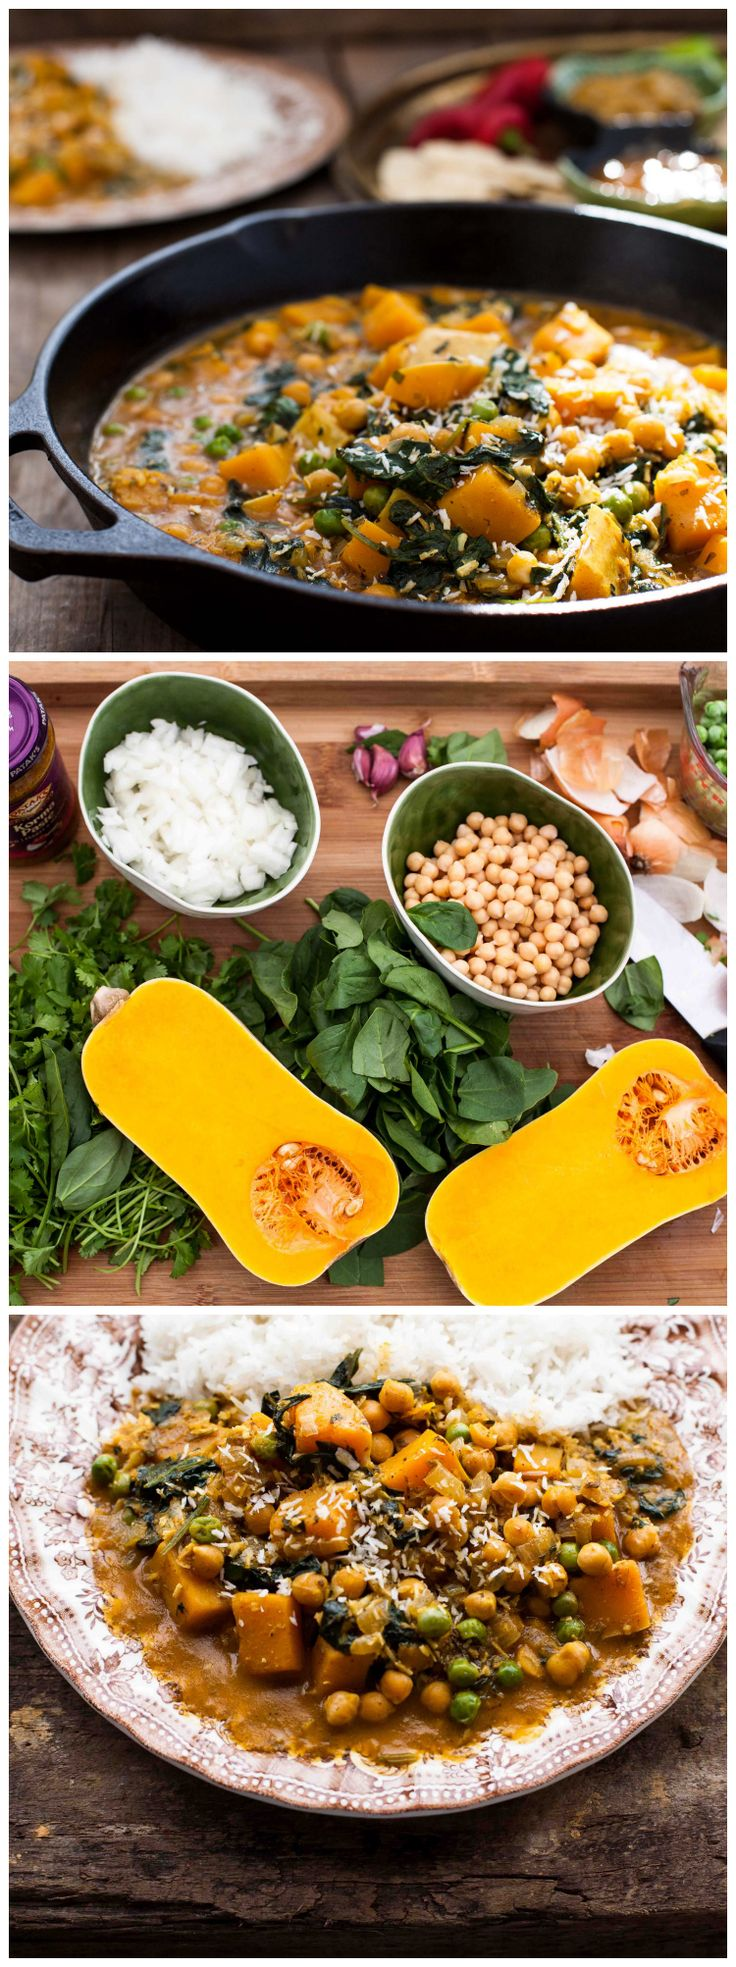 Chickpea and Butternut Squash Curry by vikalinka: This butternut squash and…